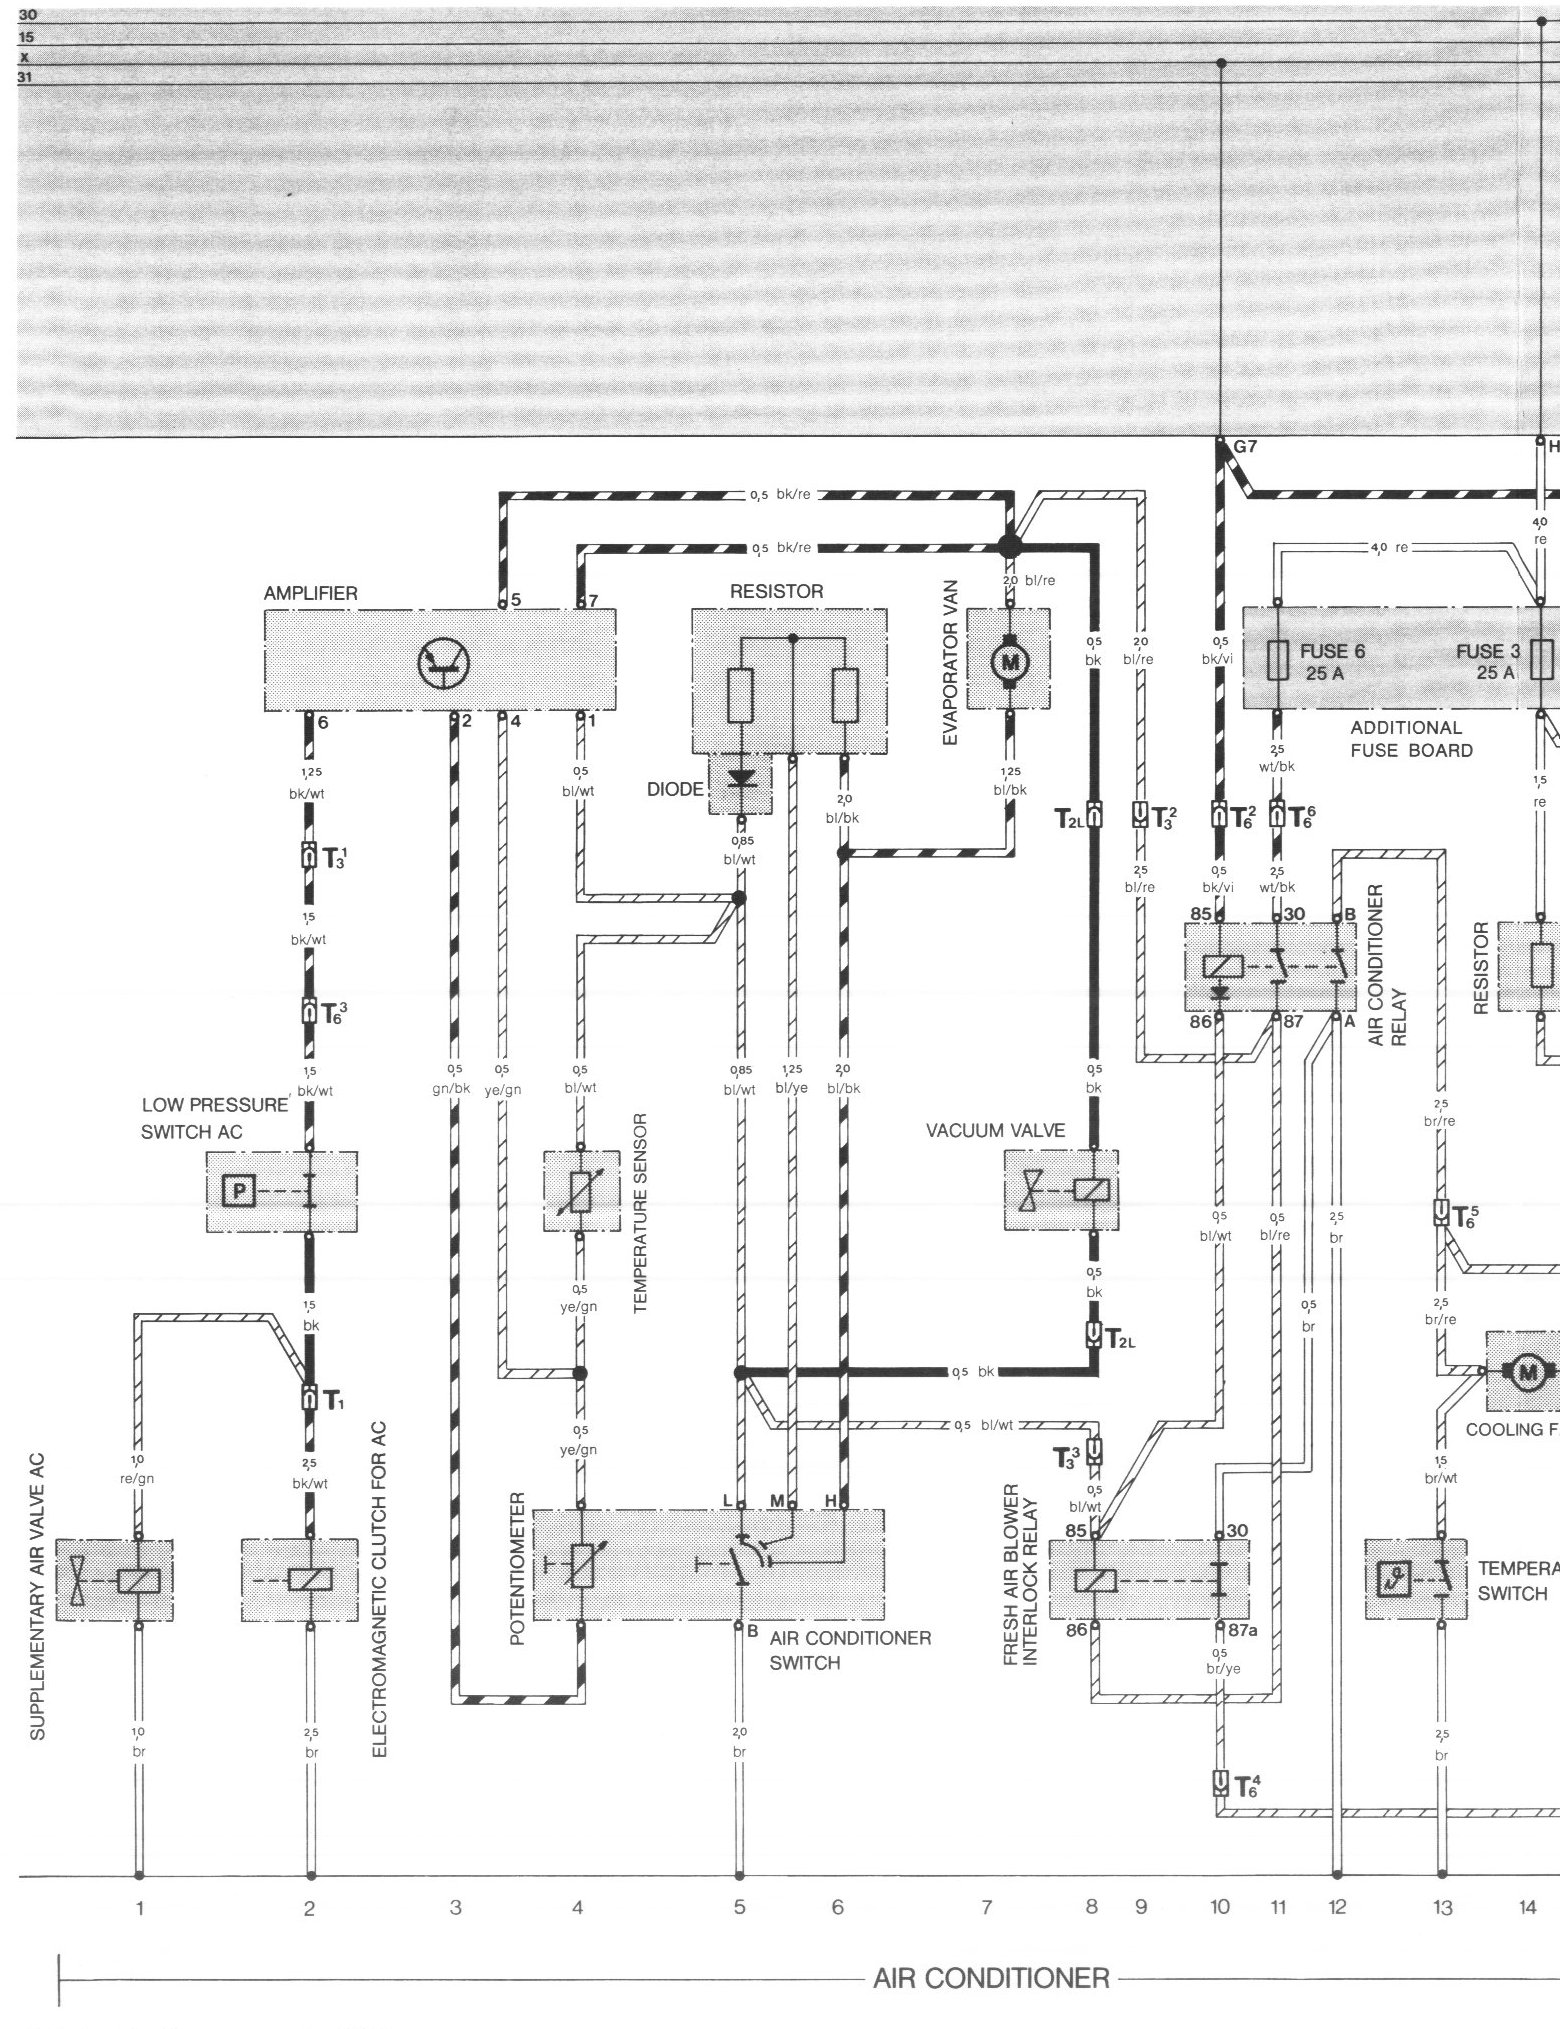 944_84_AC_1 pelican parts porsche 924 944 electrical diagrams on porsche 944 wiring diagram pdf